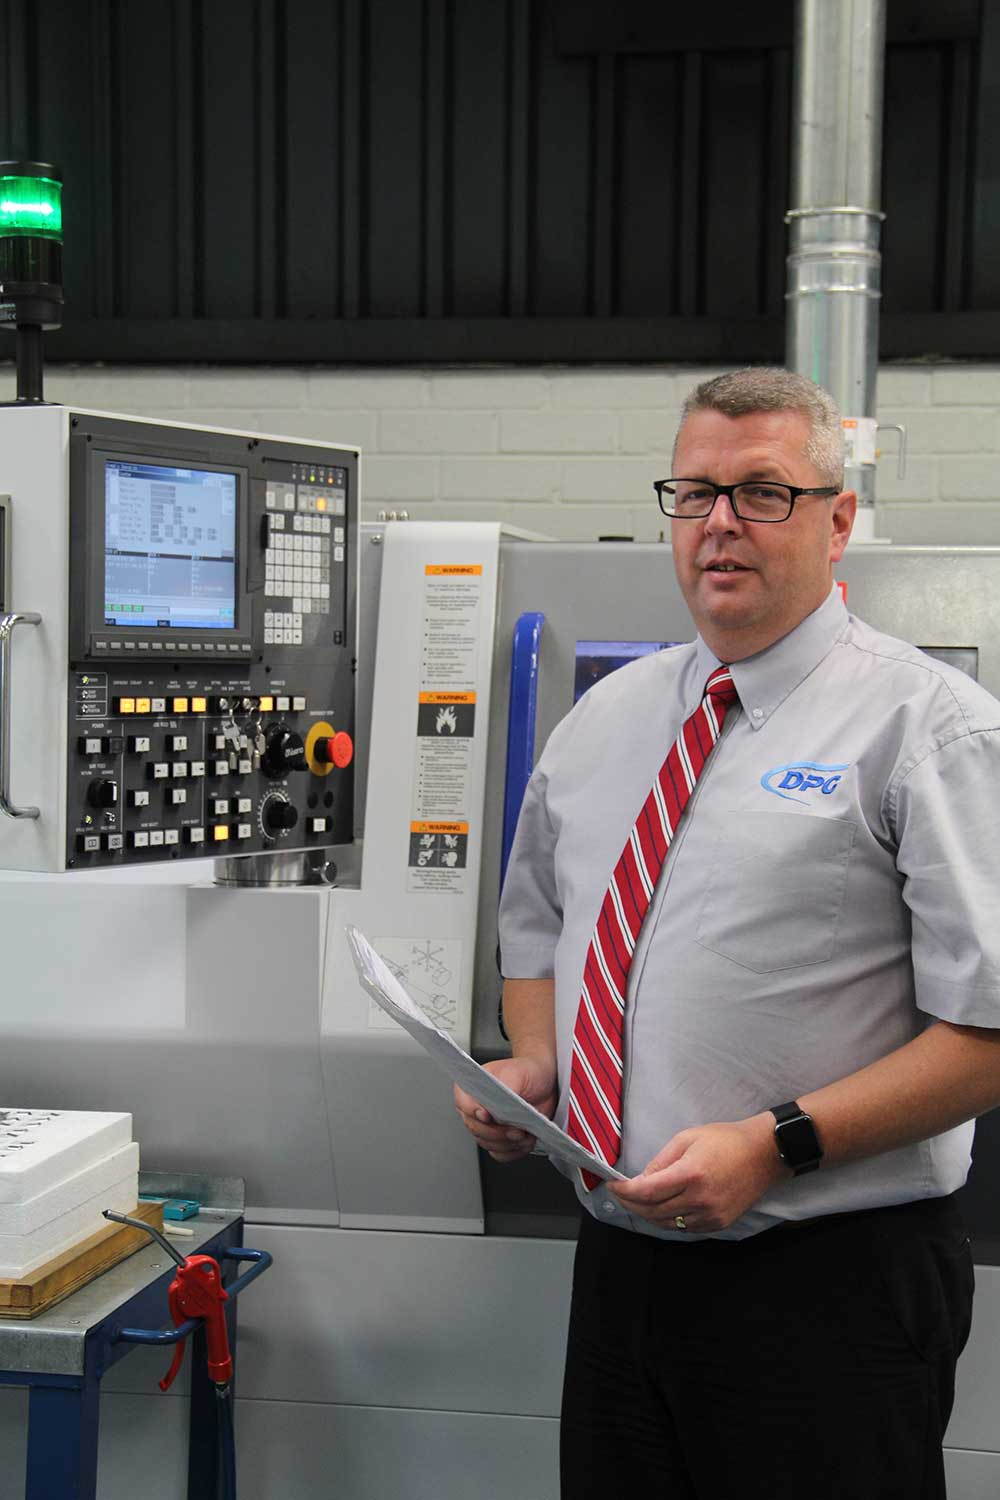 CNC Automatic Lathe first in UK